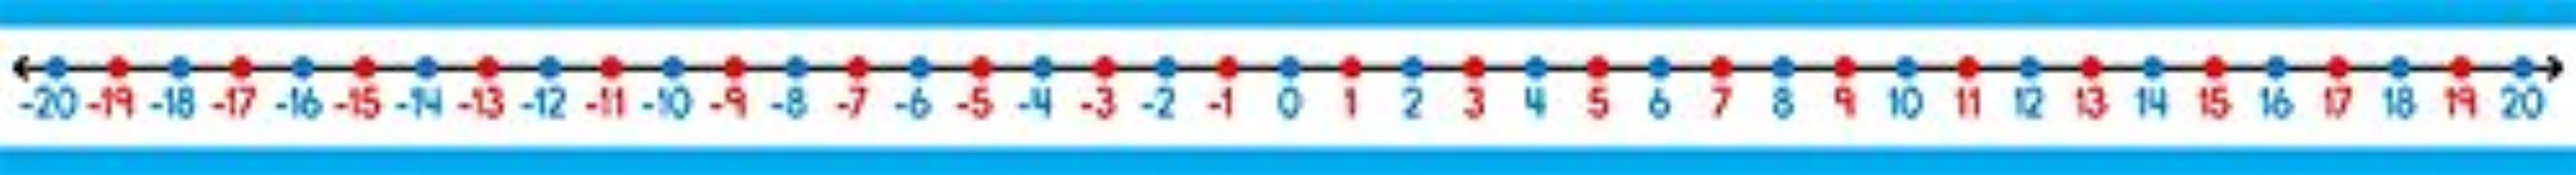 -20 to 20 Student Number Lines